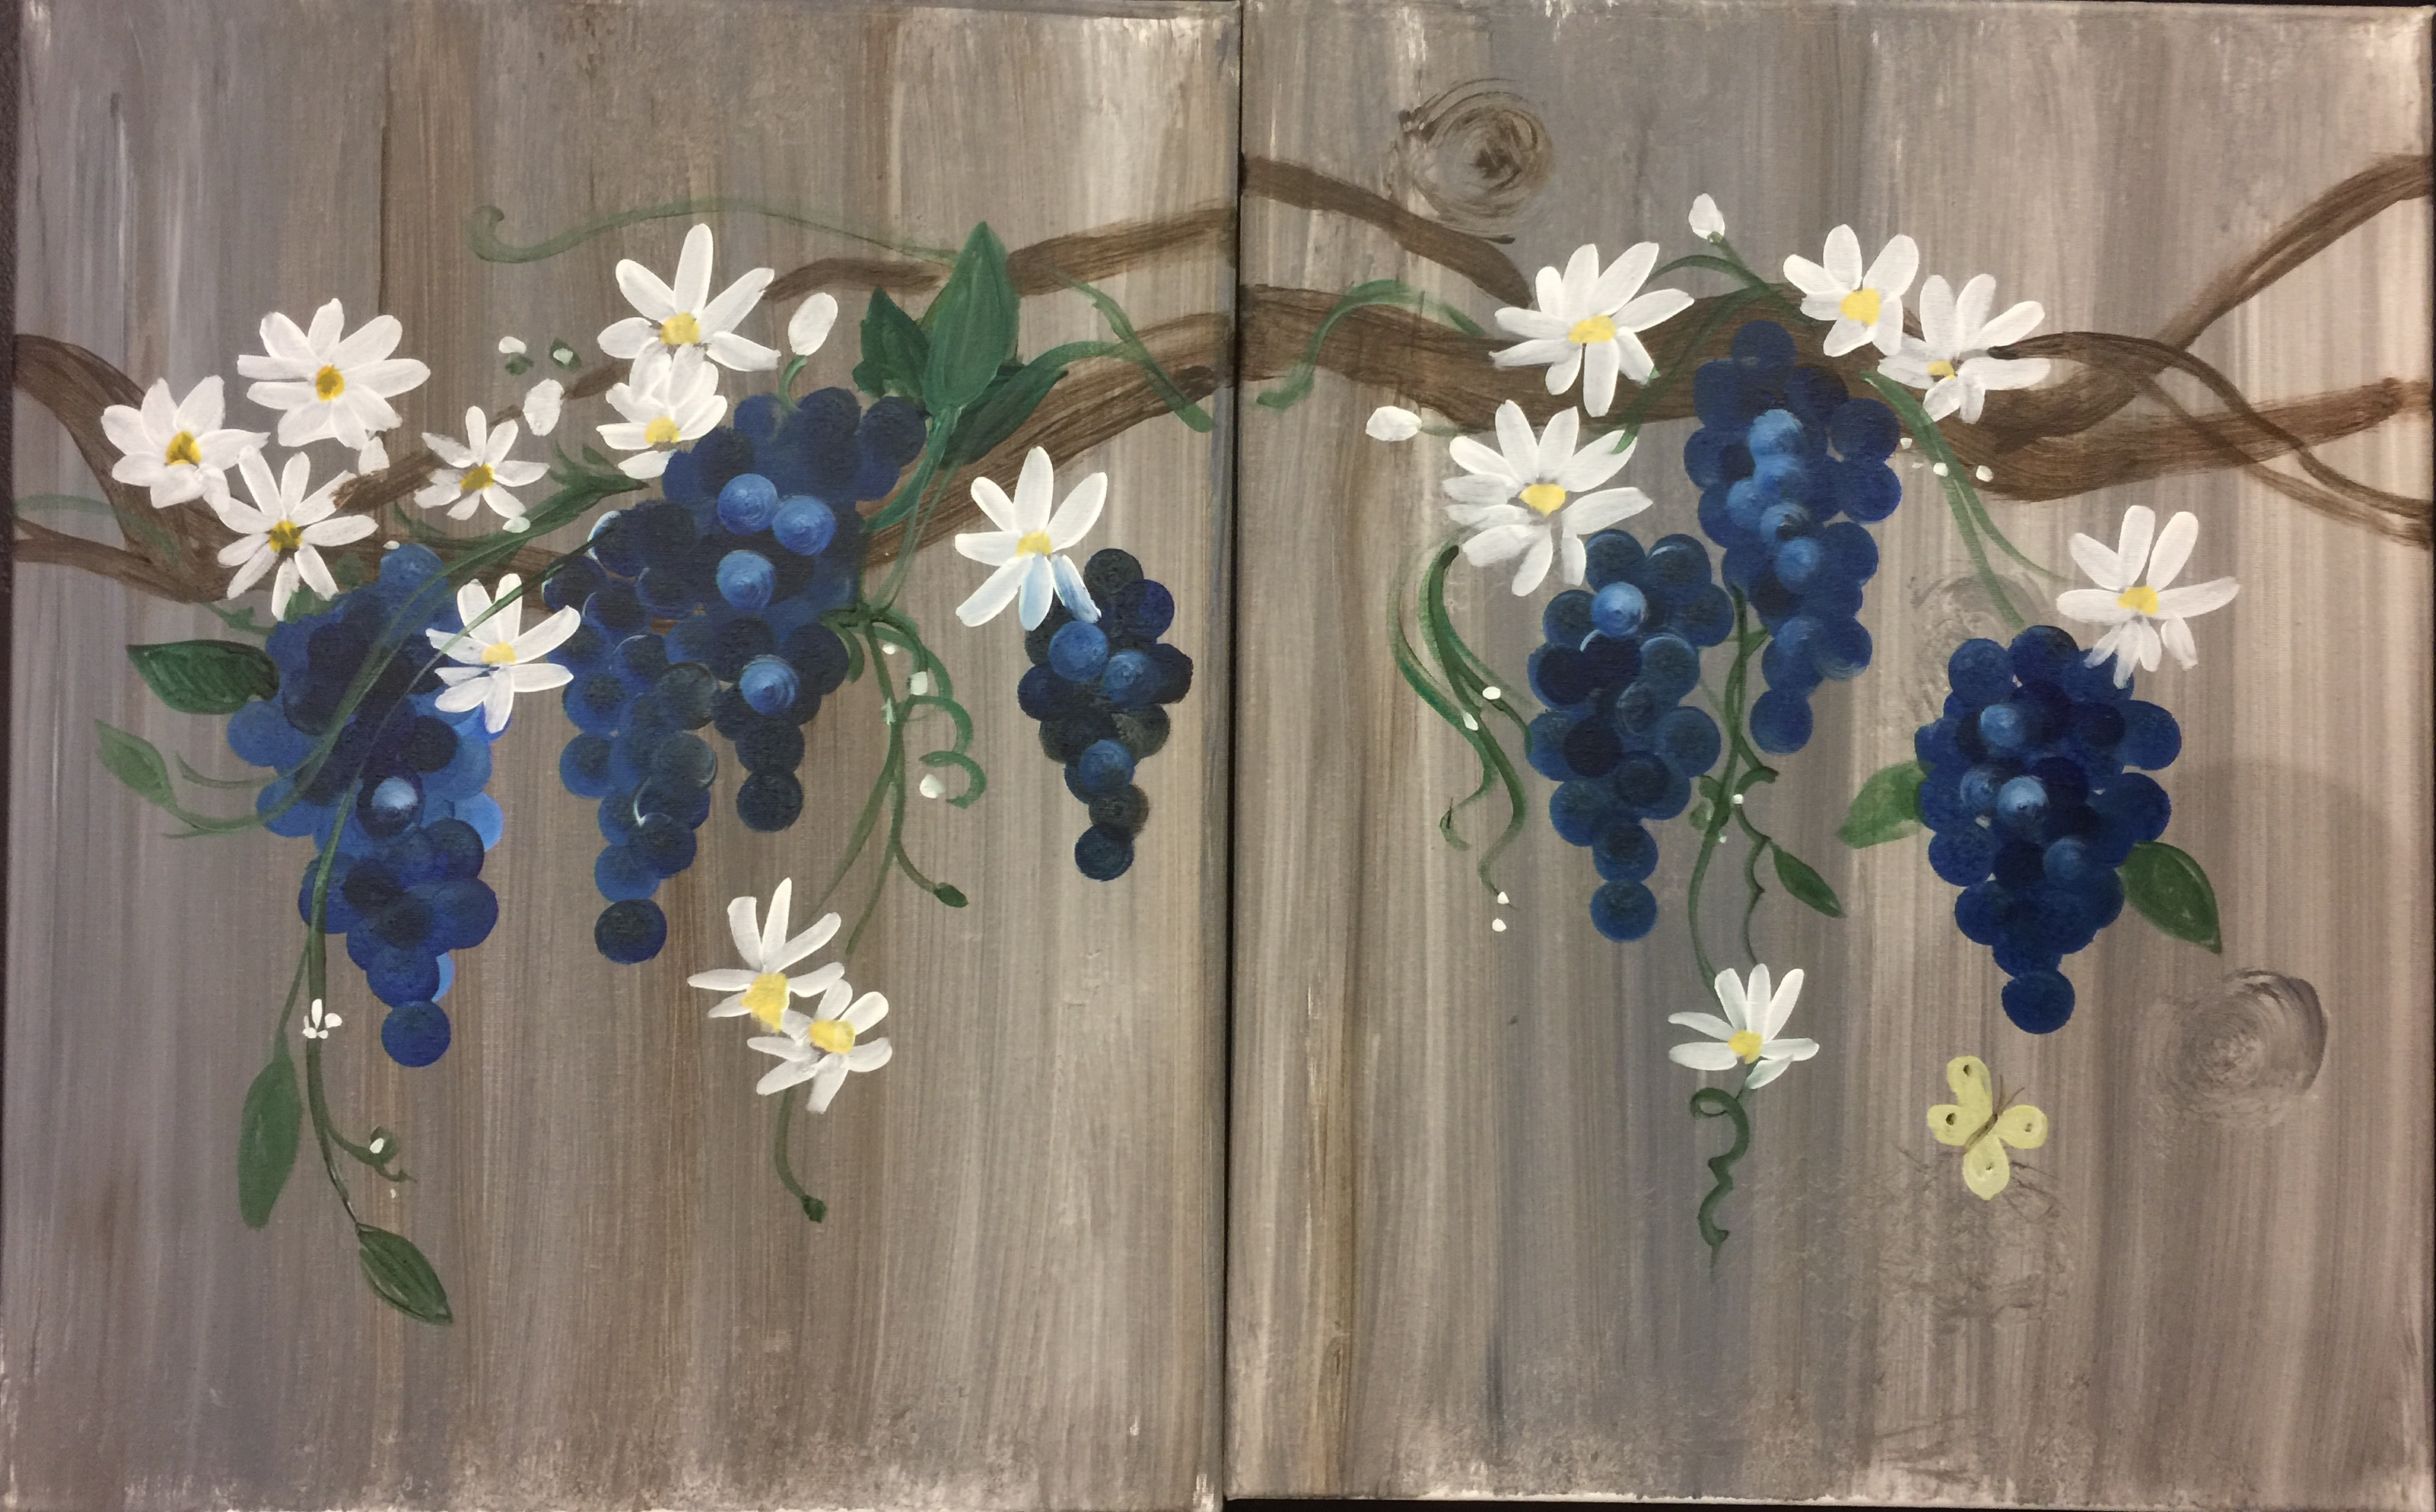 E-1 Grapes and Daisies